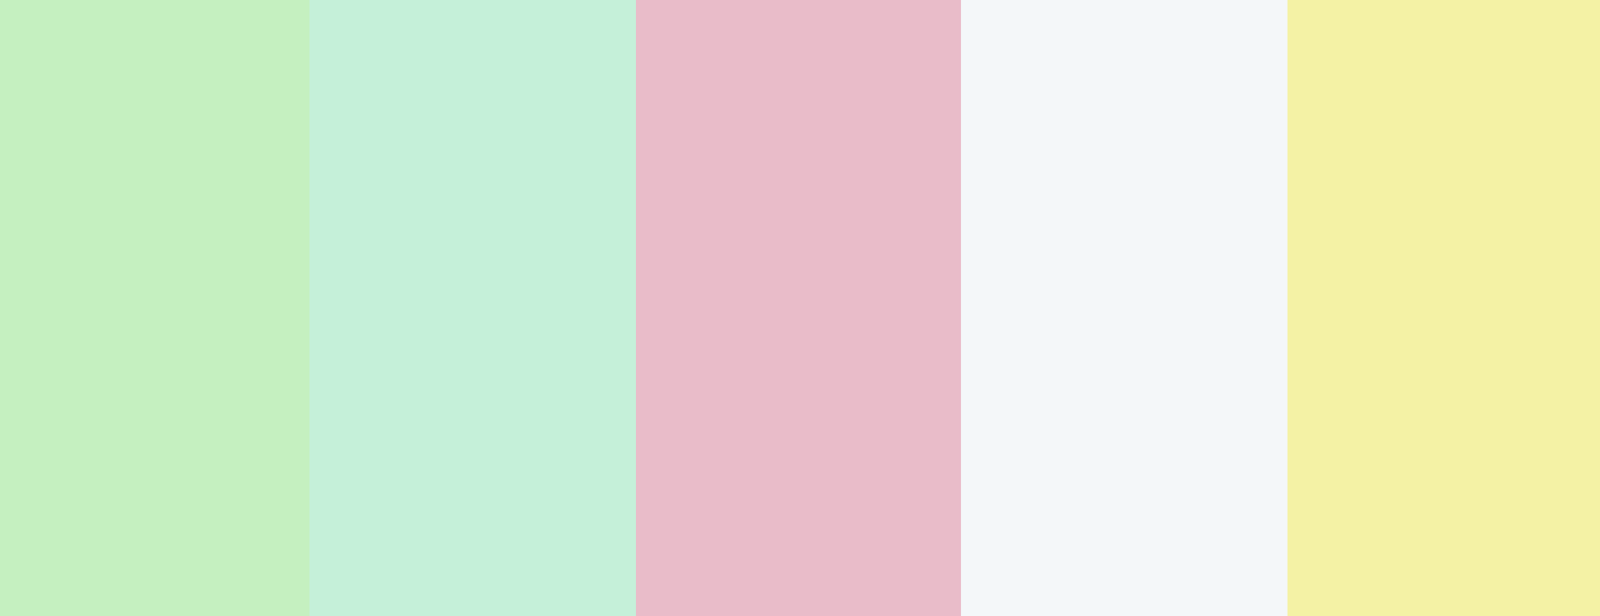 14 Unforgettable Color Palettes To Help You Design Your Own